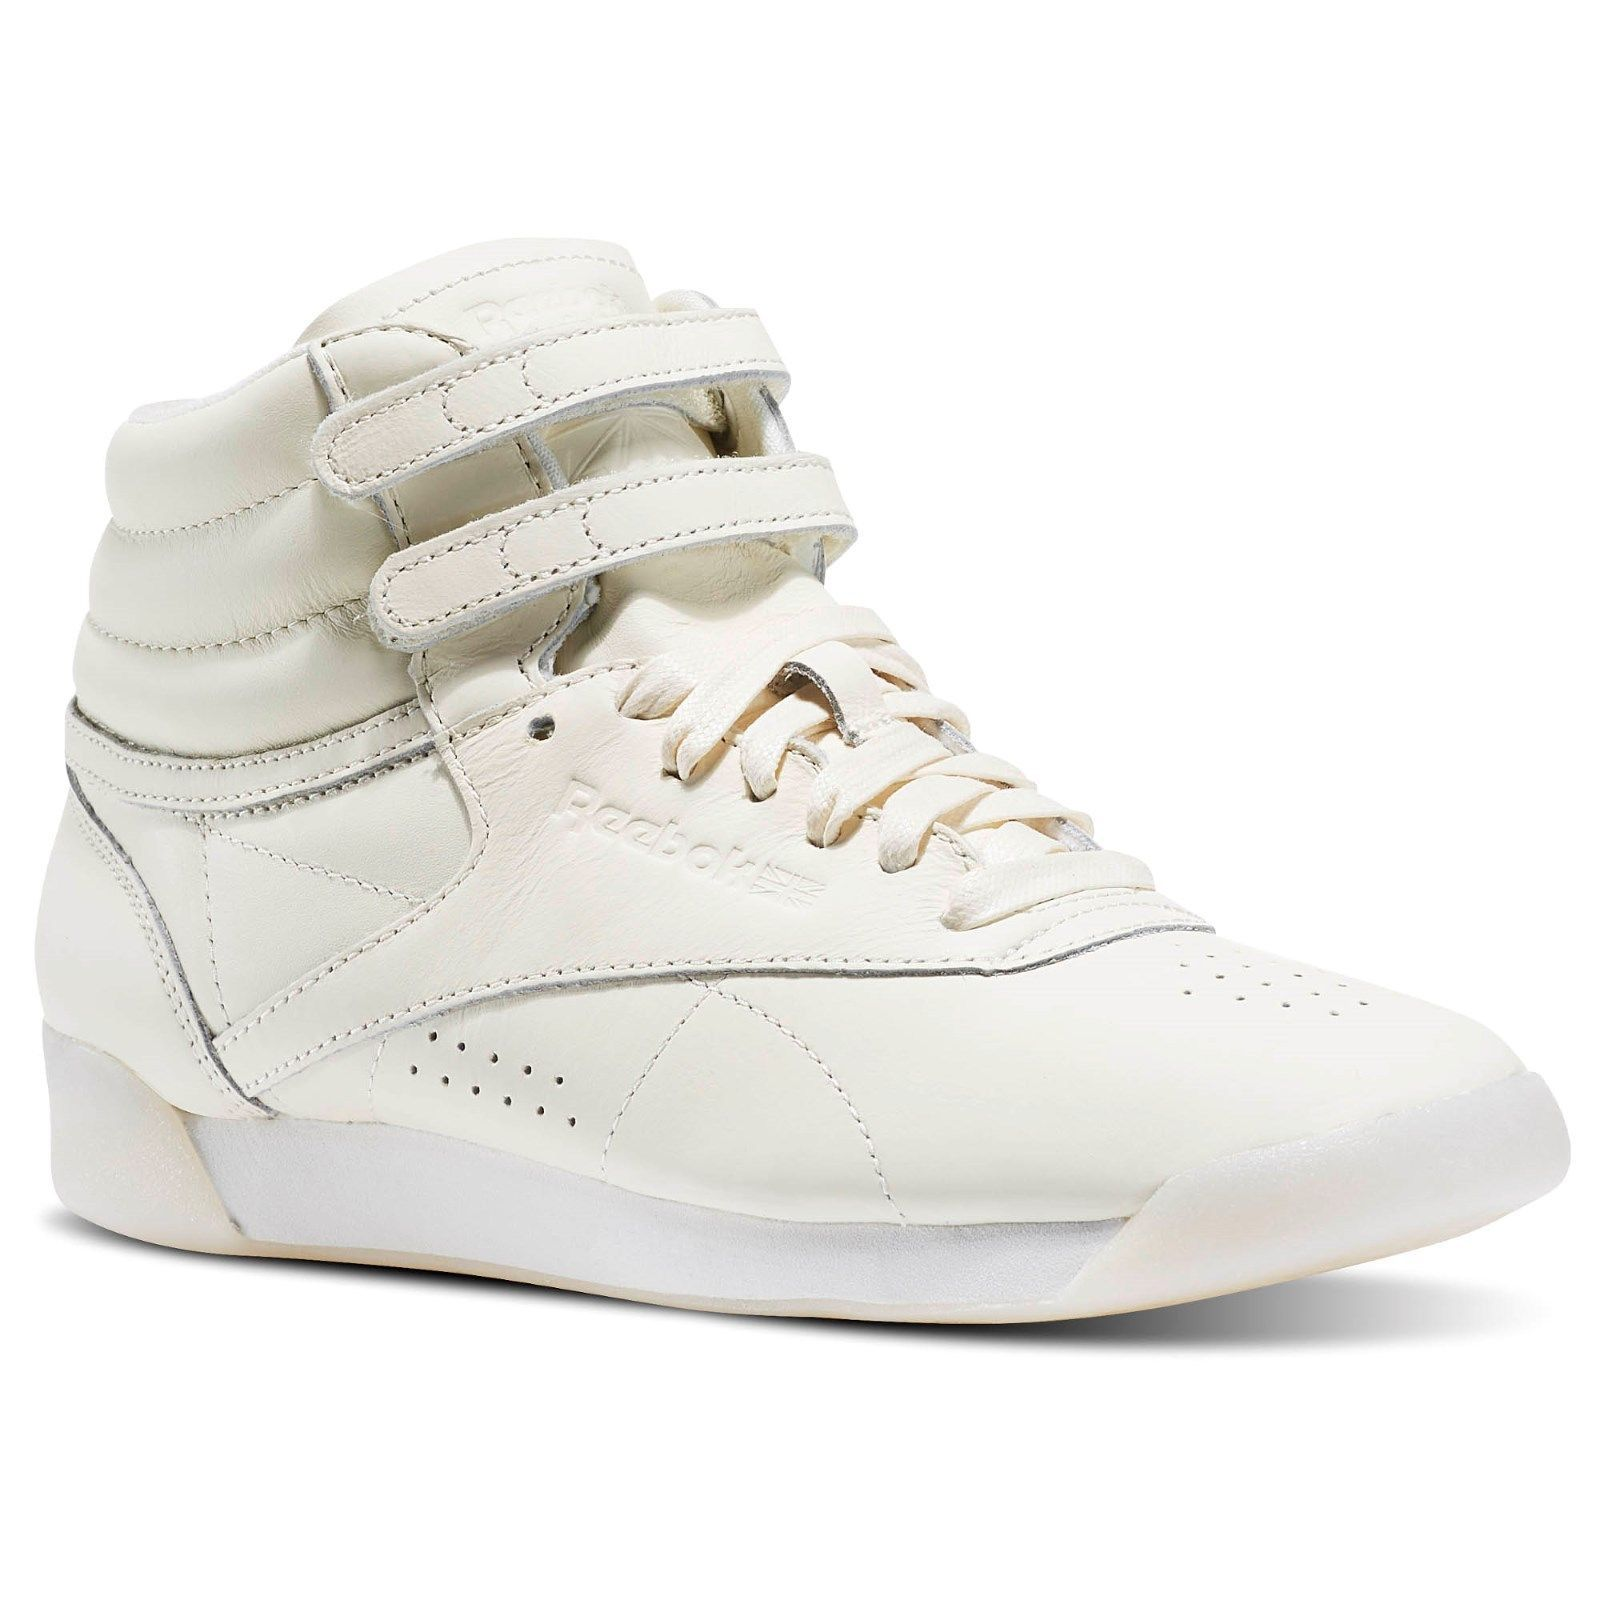 54ac775ed Reebok Classic Women's Freestyle Hi Face 35 Sneakers Size 5 to 10 us BD3569